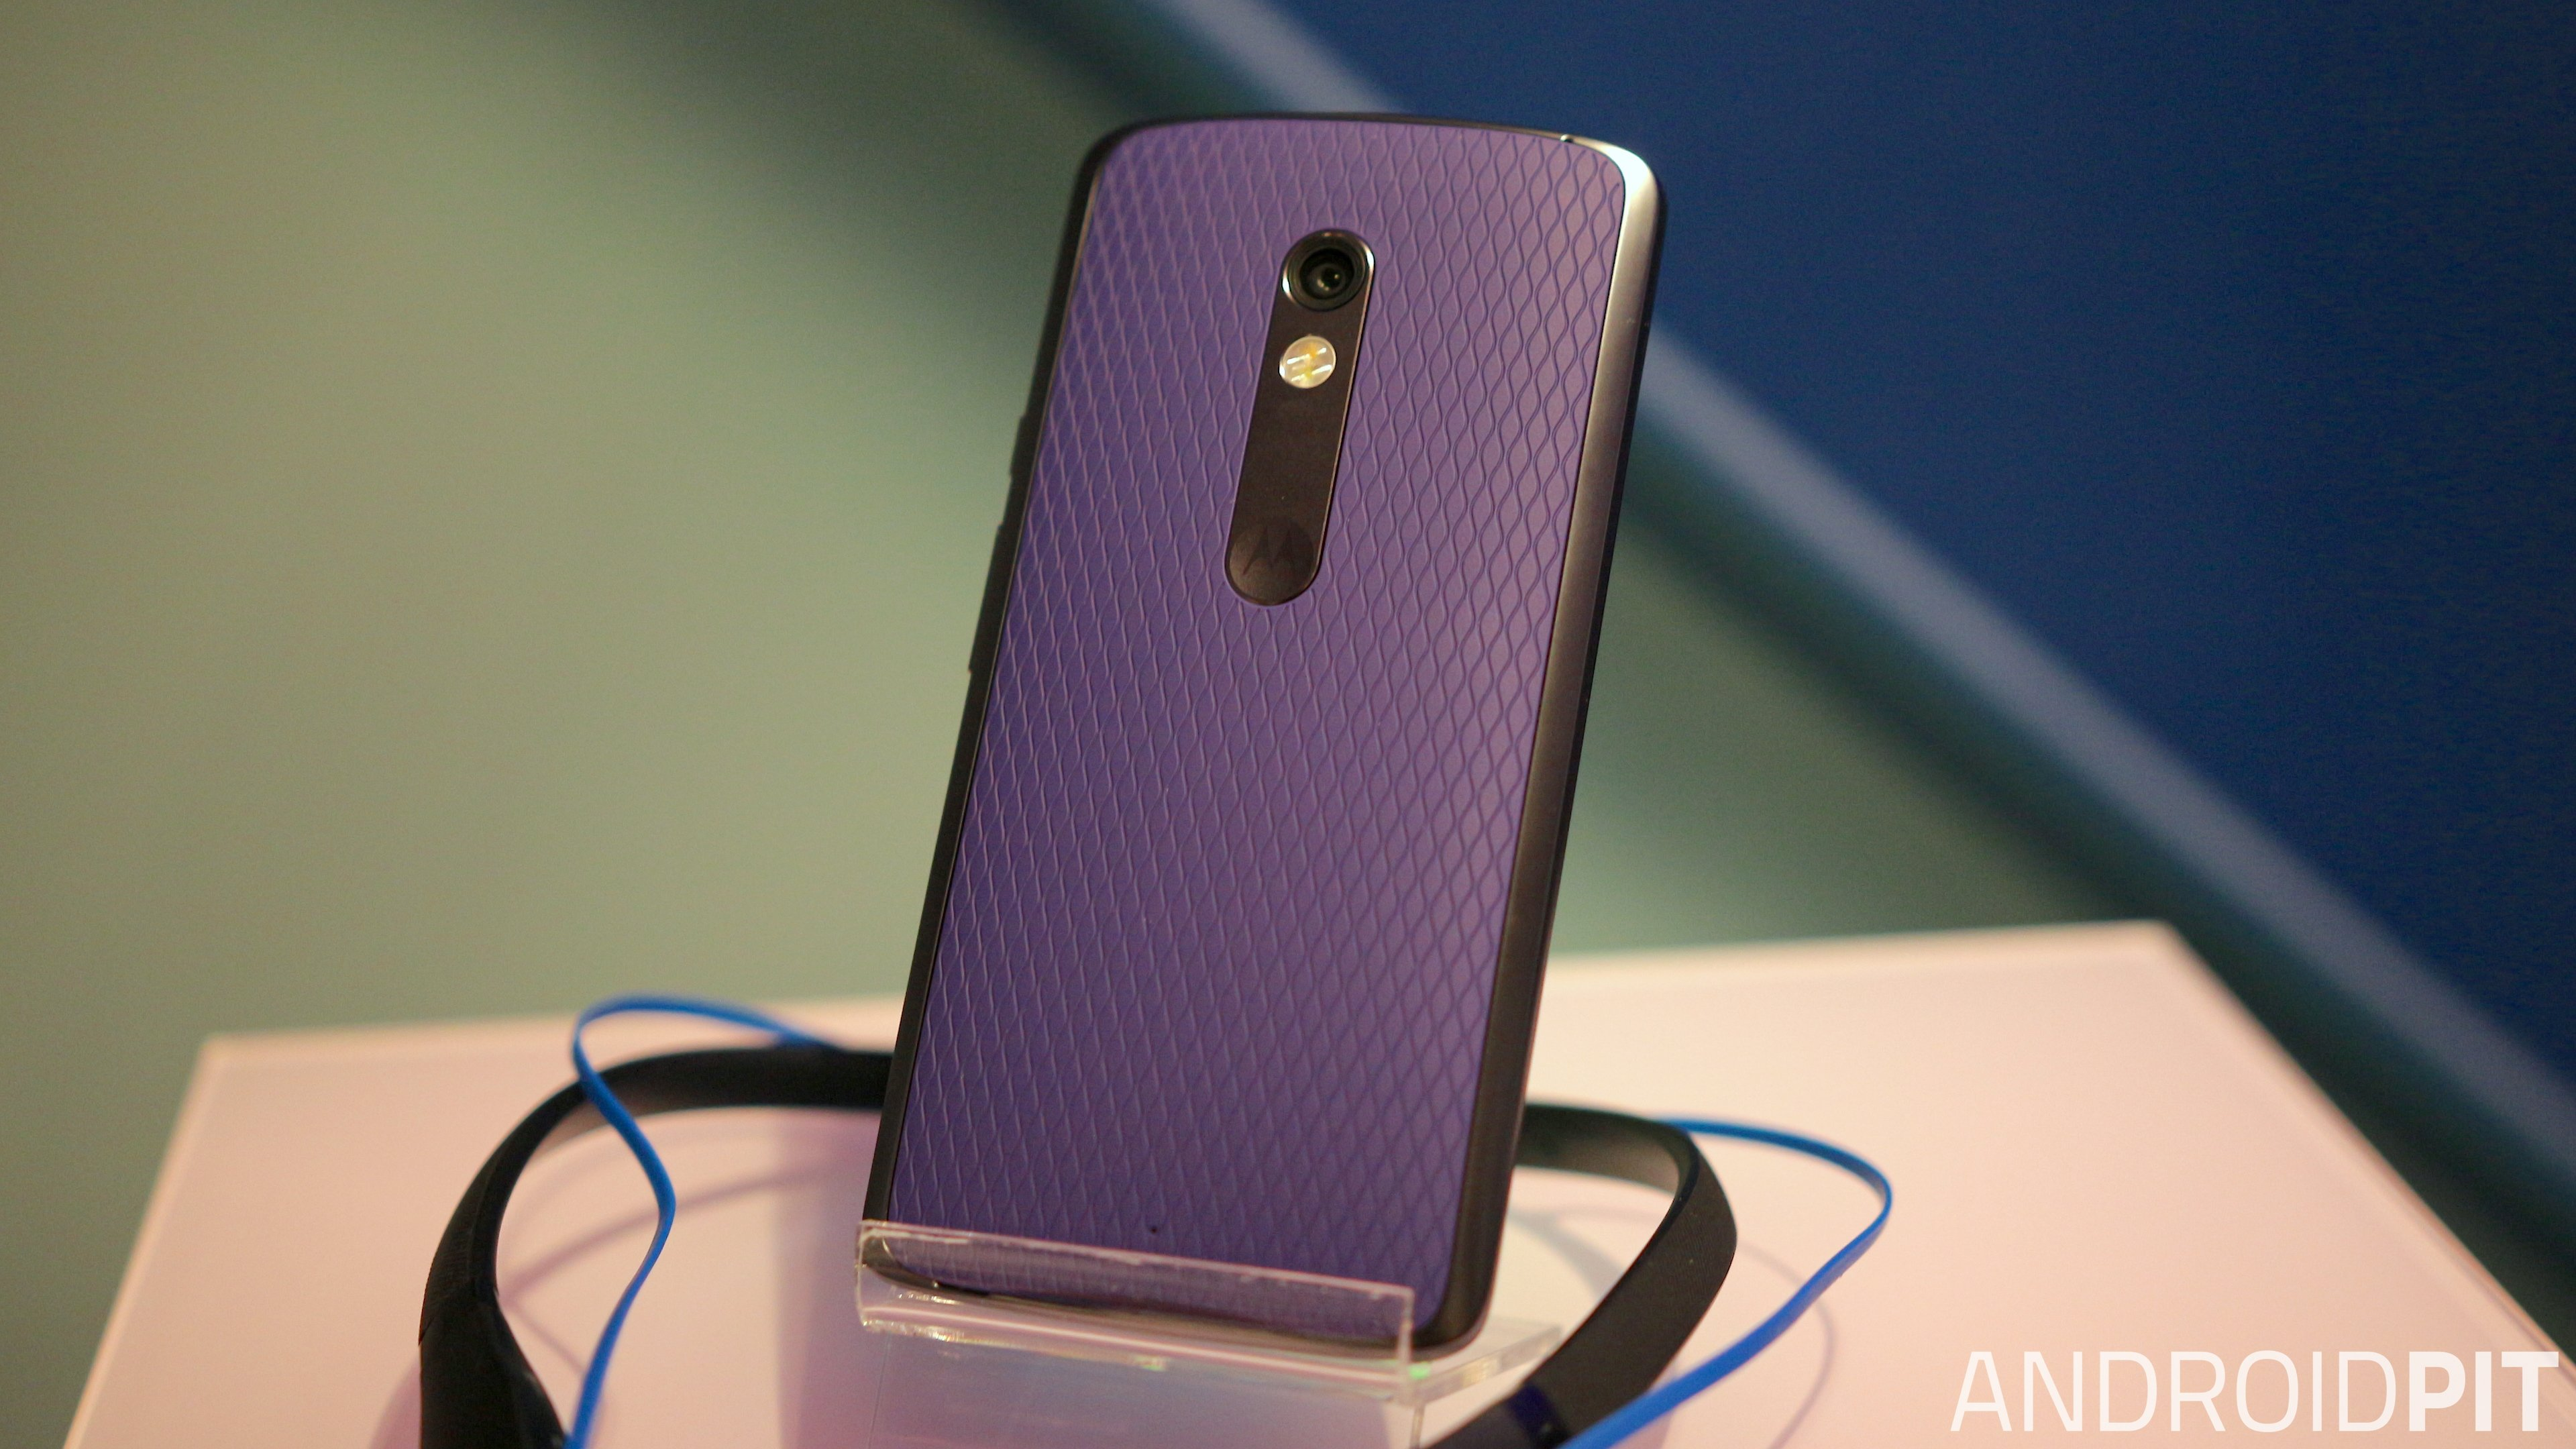 Moto z moto z play now available in india price specifications and - Motorola Moto X Play Review Big Battery On A Budget Hardware Reviews Androidpit